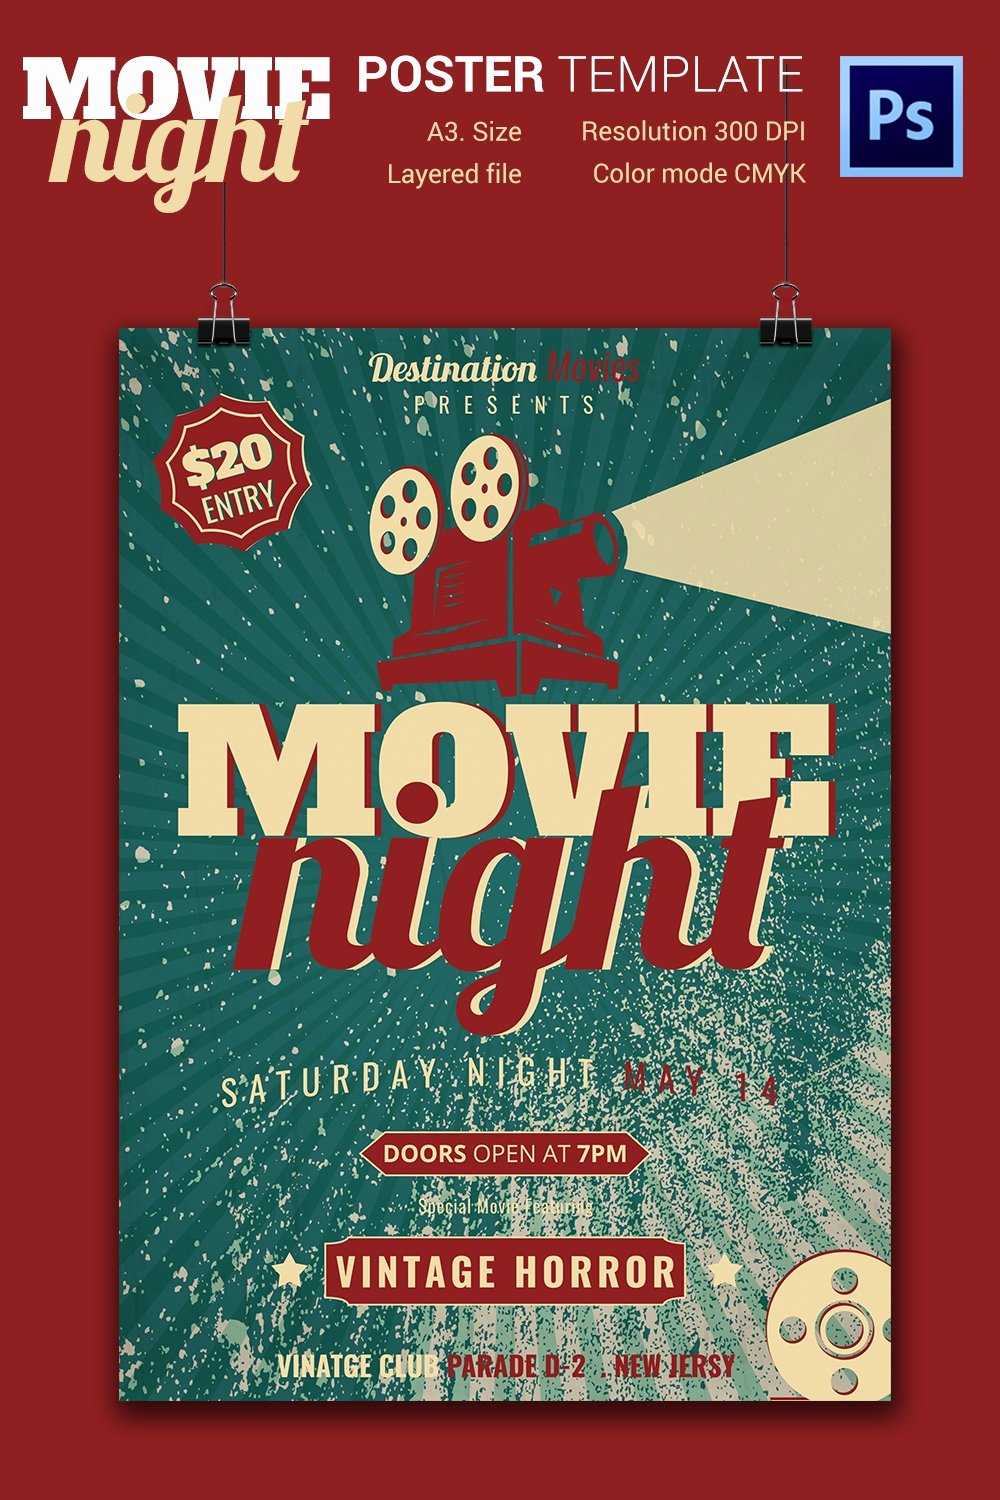 Free Movie Night Flyer Template Inspirational Movie Night Flyer Template 25 Free Jpg Psd format